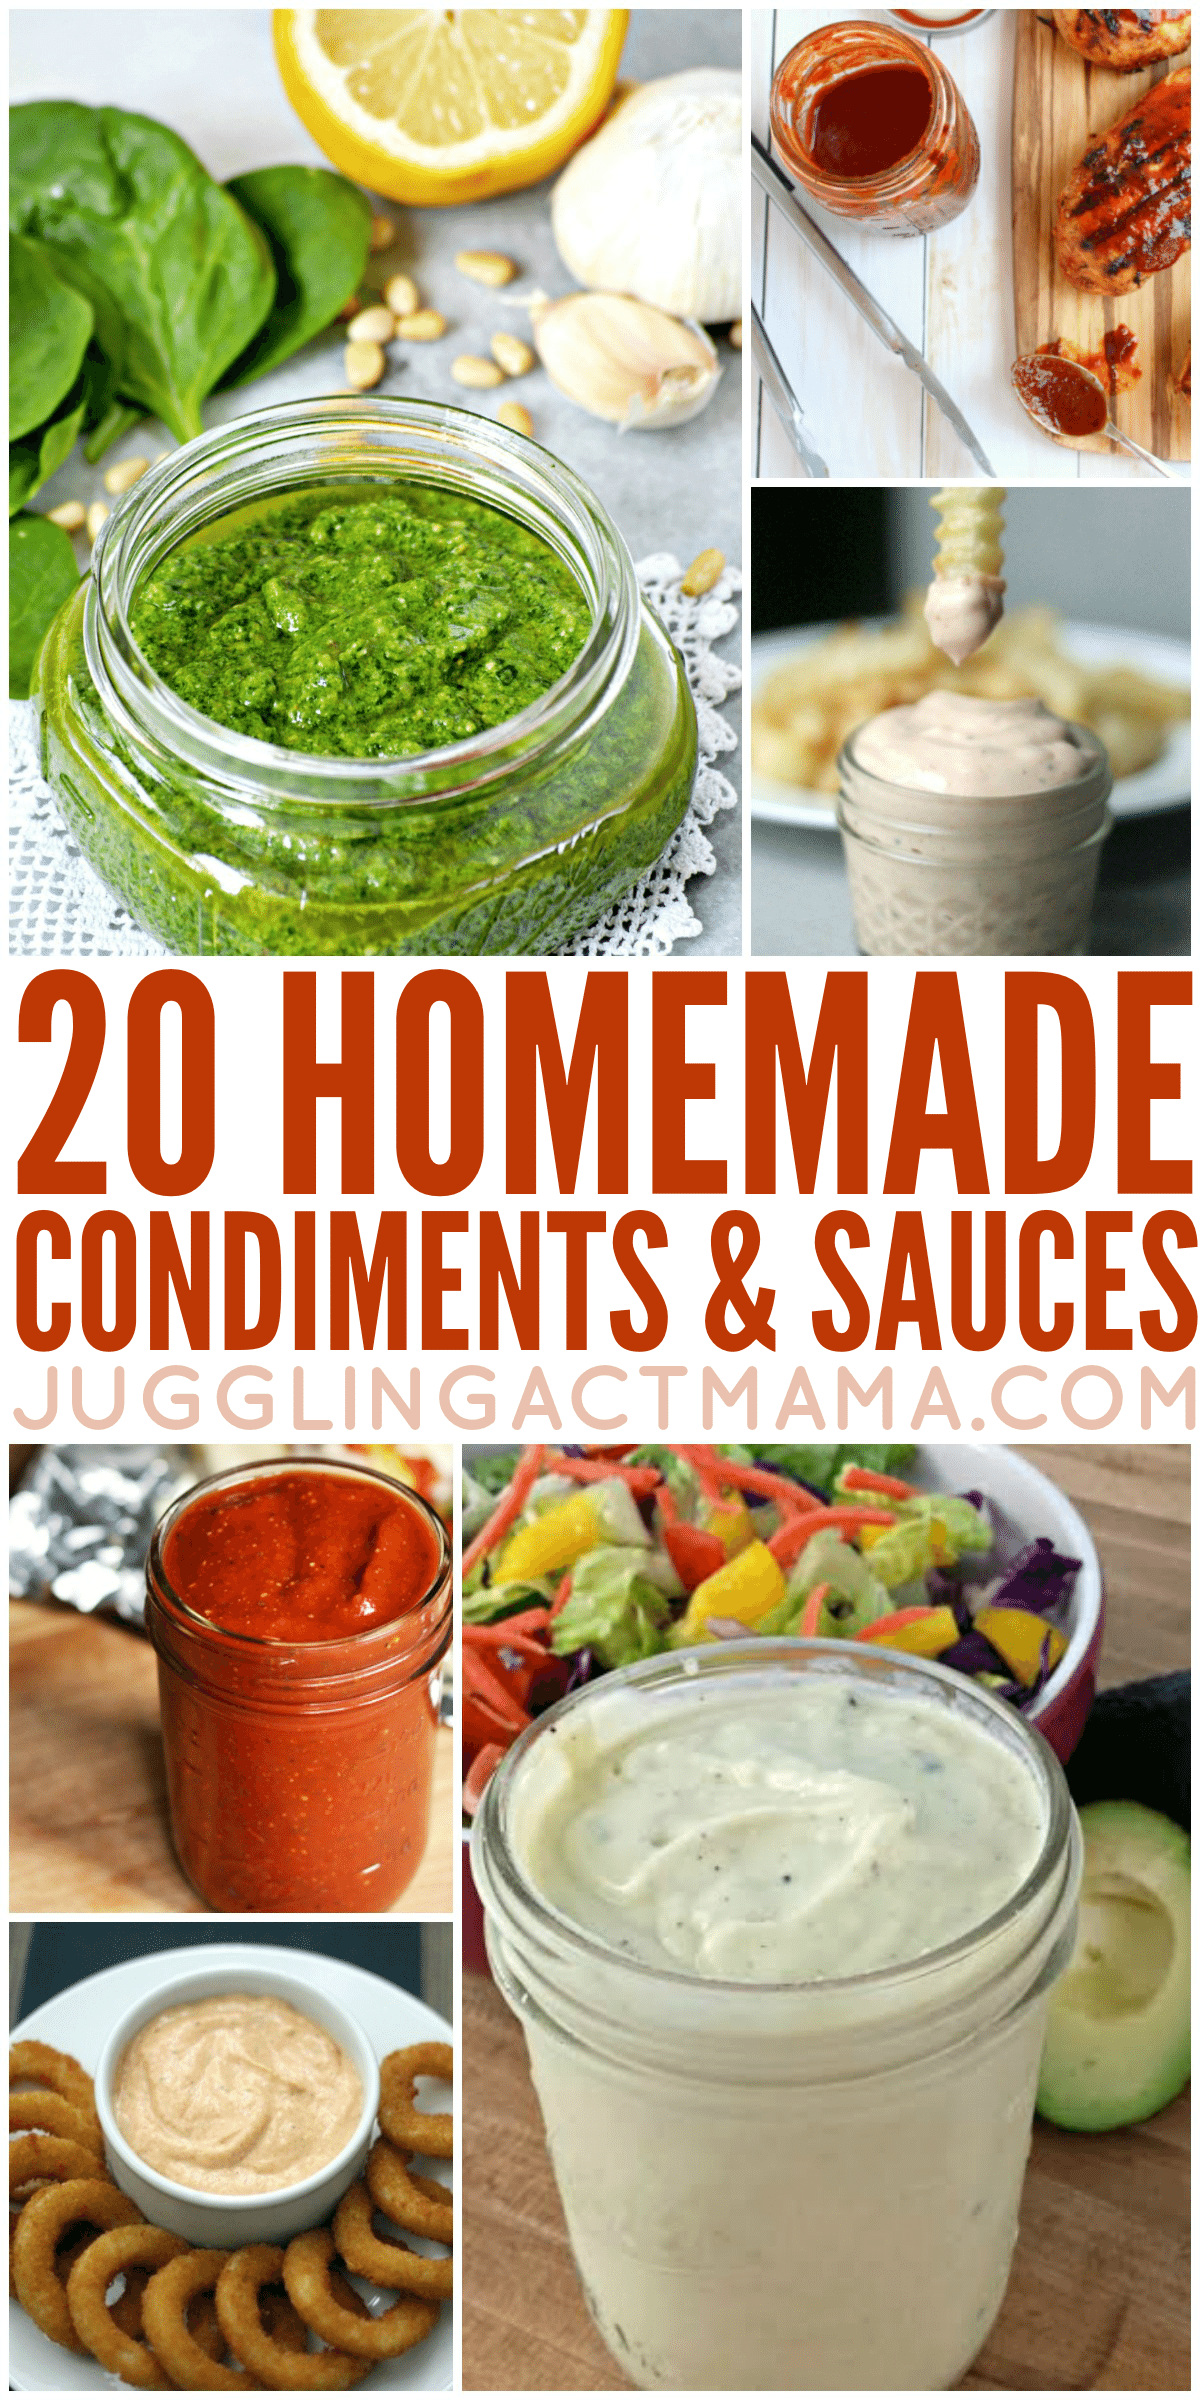 We've got loads of Condiments and Sauces you can make at home. You'll love this collection of tasty recipes! via @jugglingactmama